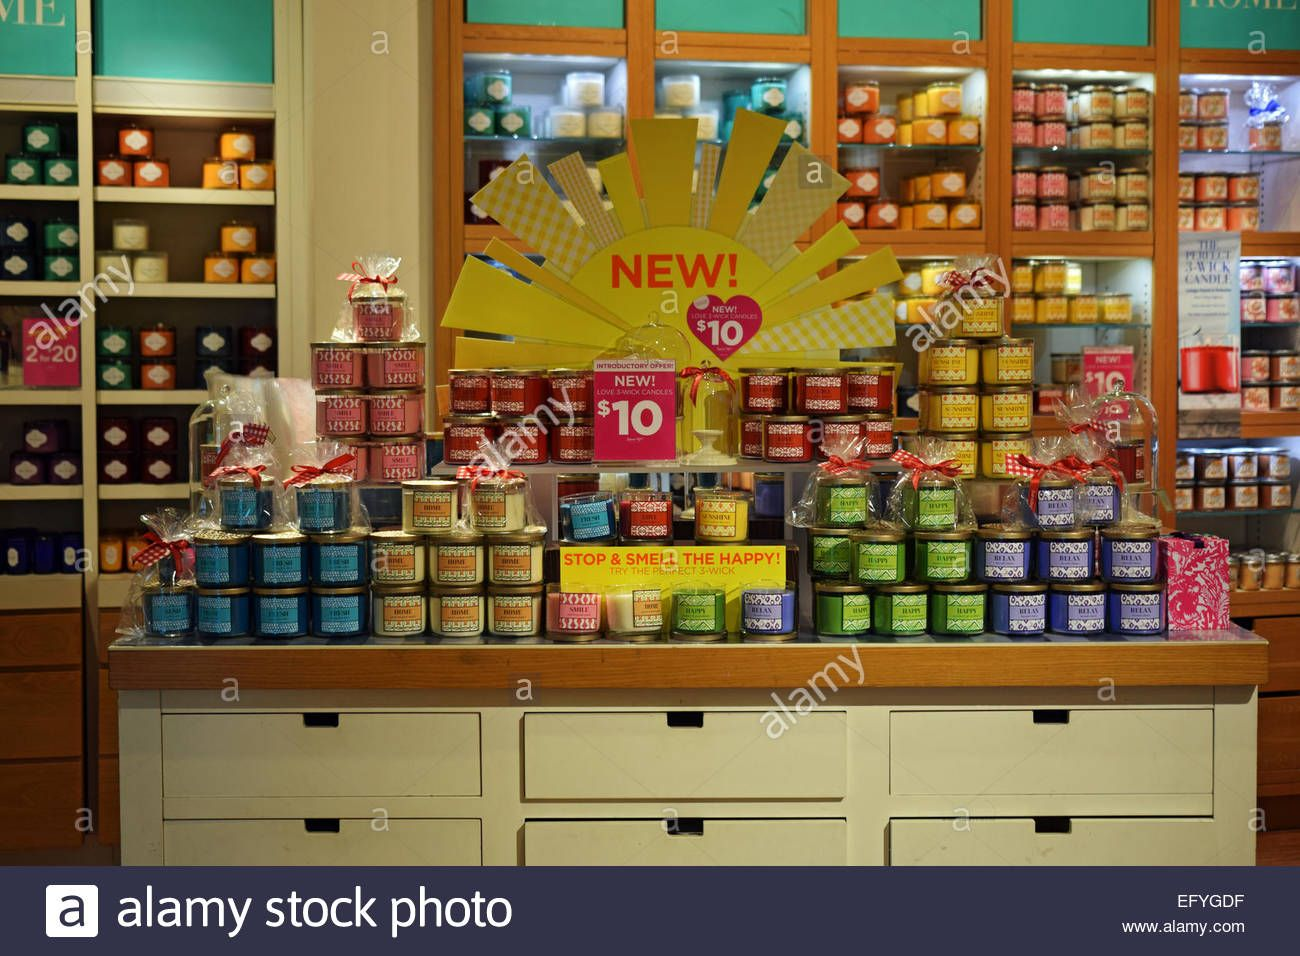 Download this stock image: Scented candles for sale at a Bath & Body ...